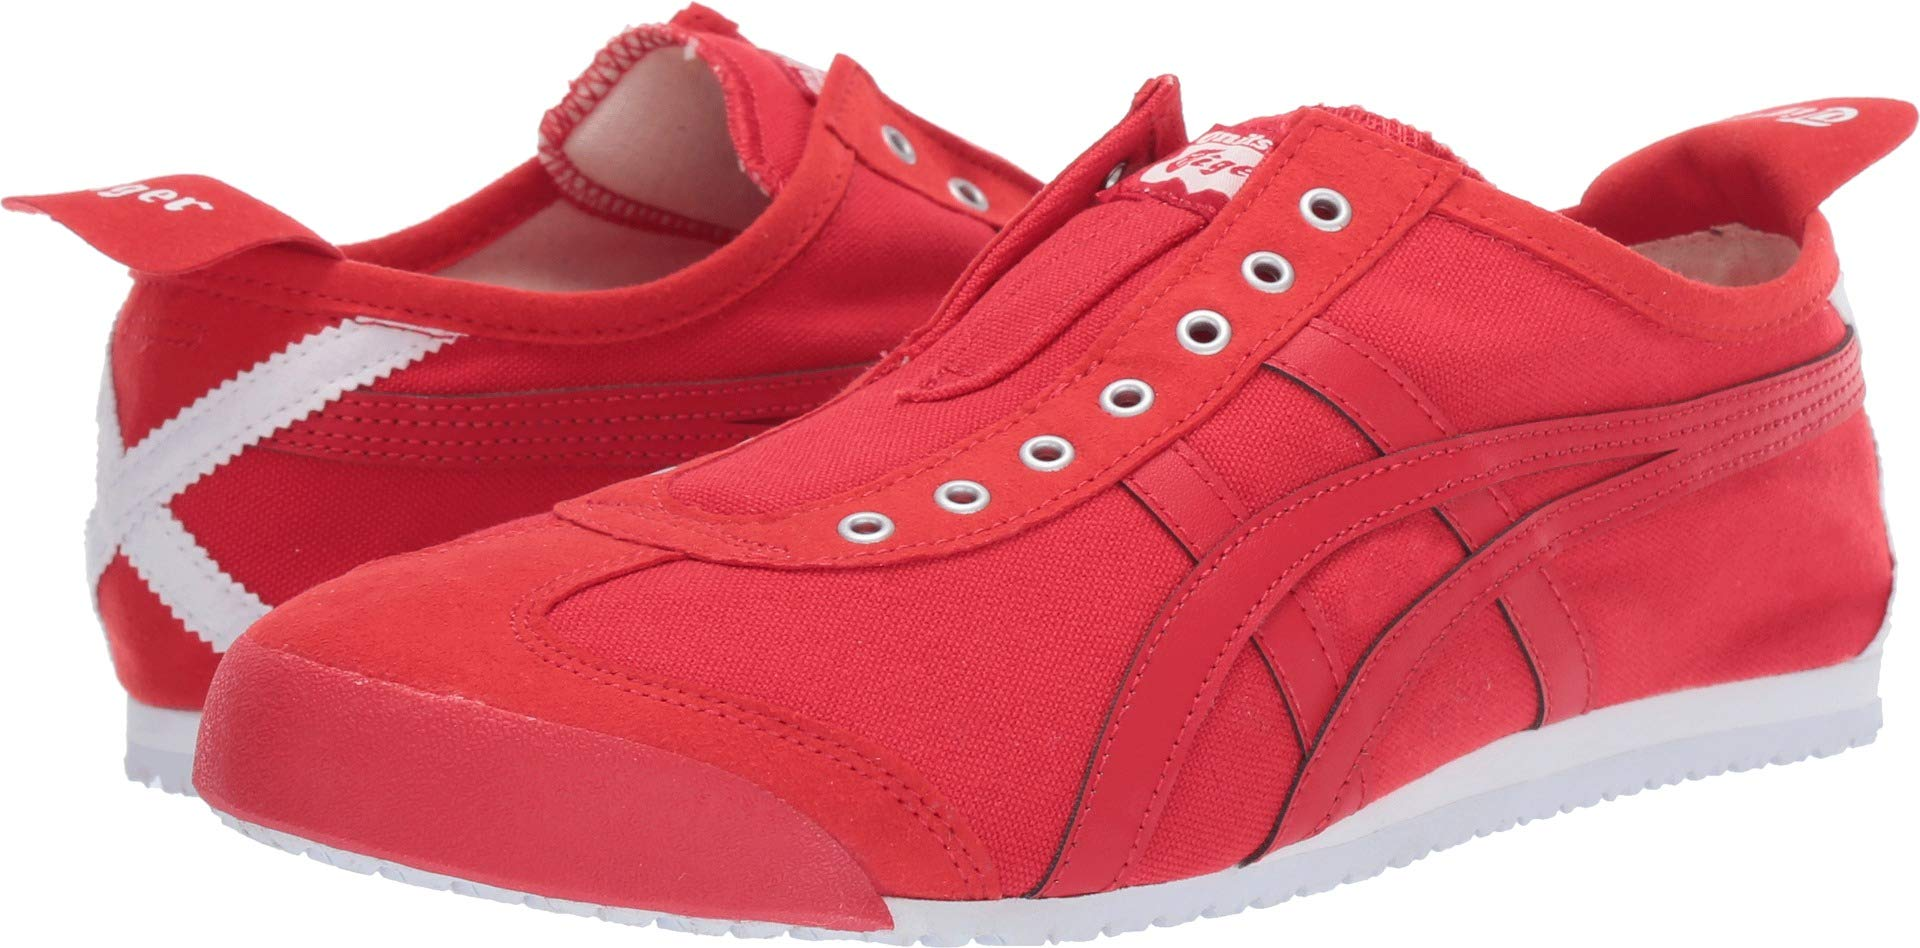 buy online d4964 0218a Onitsuka Tiger by Asics Unisex Mexico 66¿ Slip-On Classic Red/Classic Red  11 Women / 9.5 Men M US